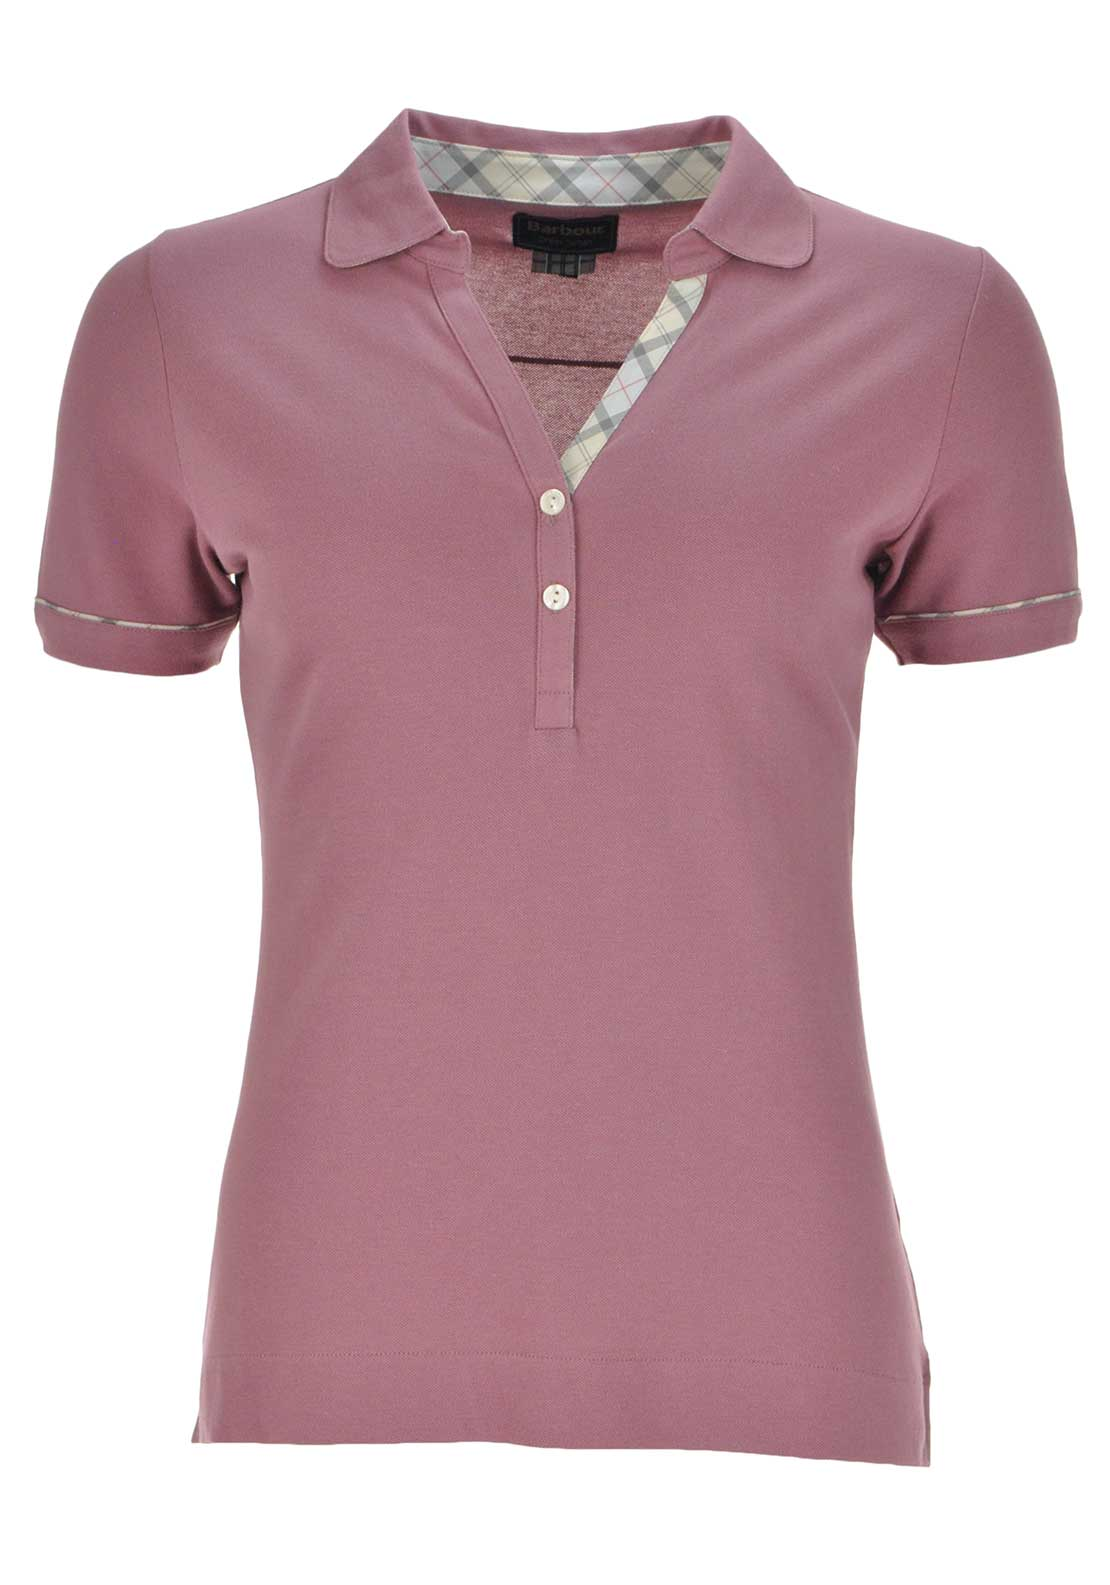 Barbour Womens Alasdair Short Sleeve Polo Shirt, Ice Rose Pink